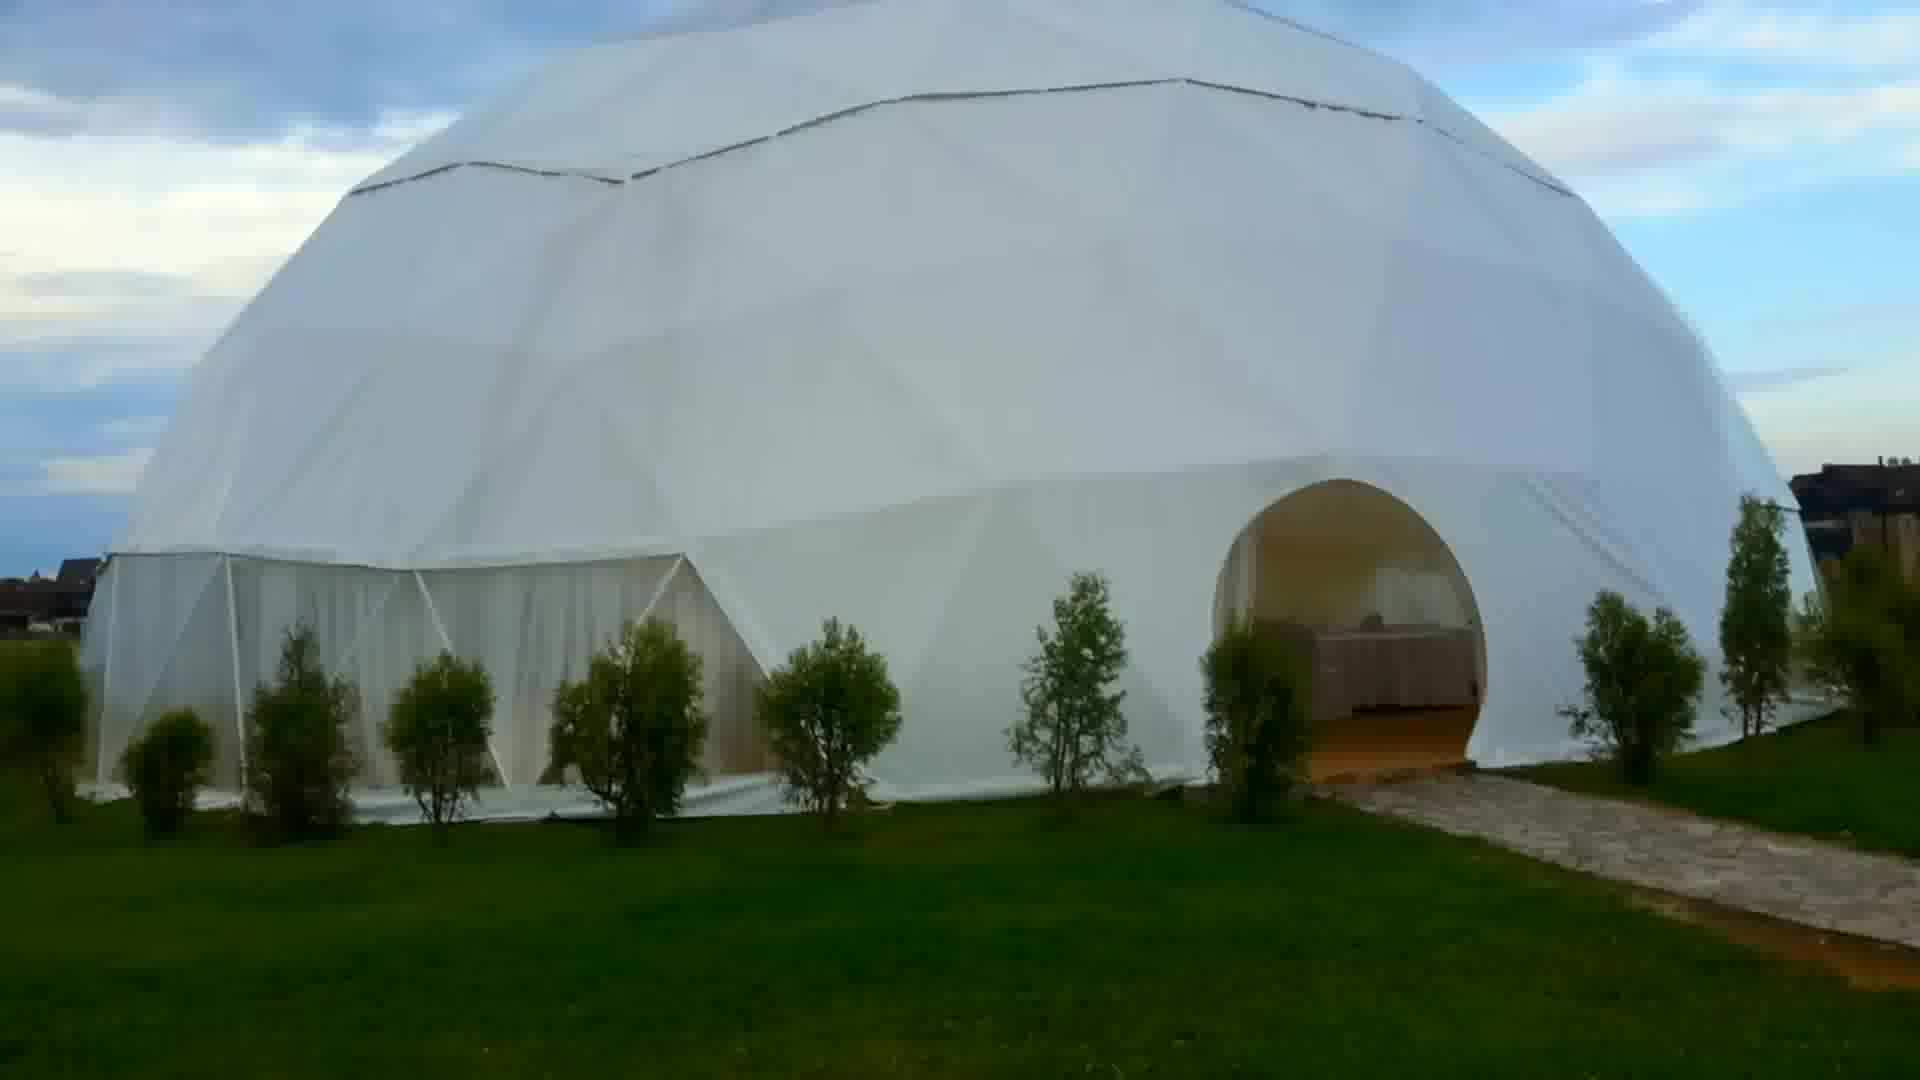 Top selling PVC fabric coated diy party dome tent 30 meter c&er trailer tent & Top Selling Pvc Fabric Coated Diy Party Dome Tent 30 Meter Camper ...